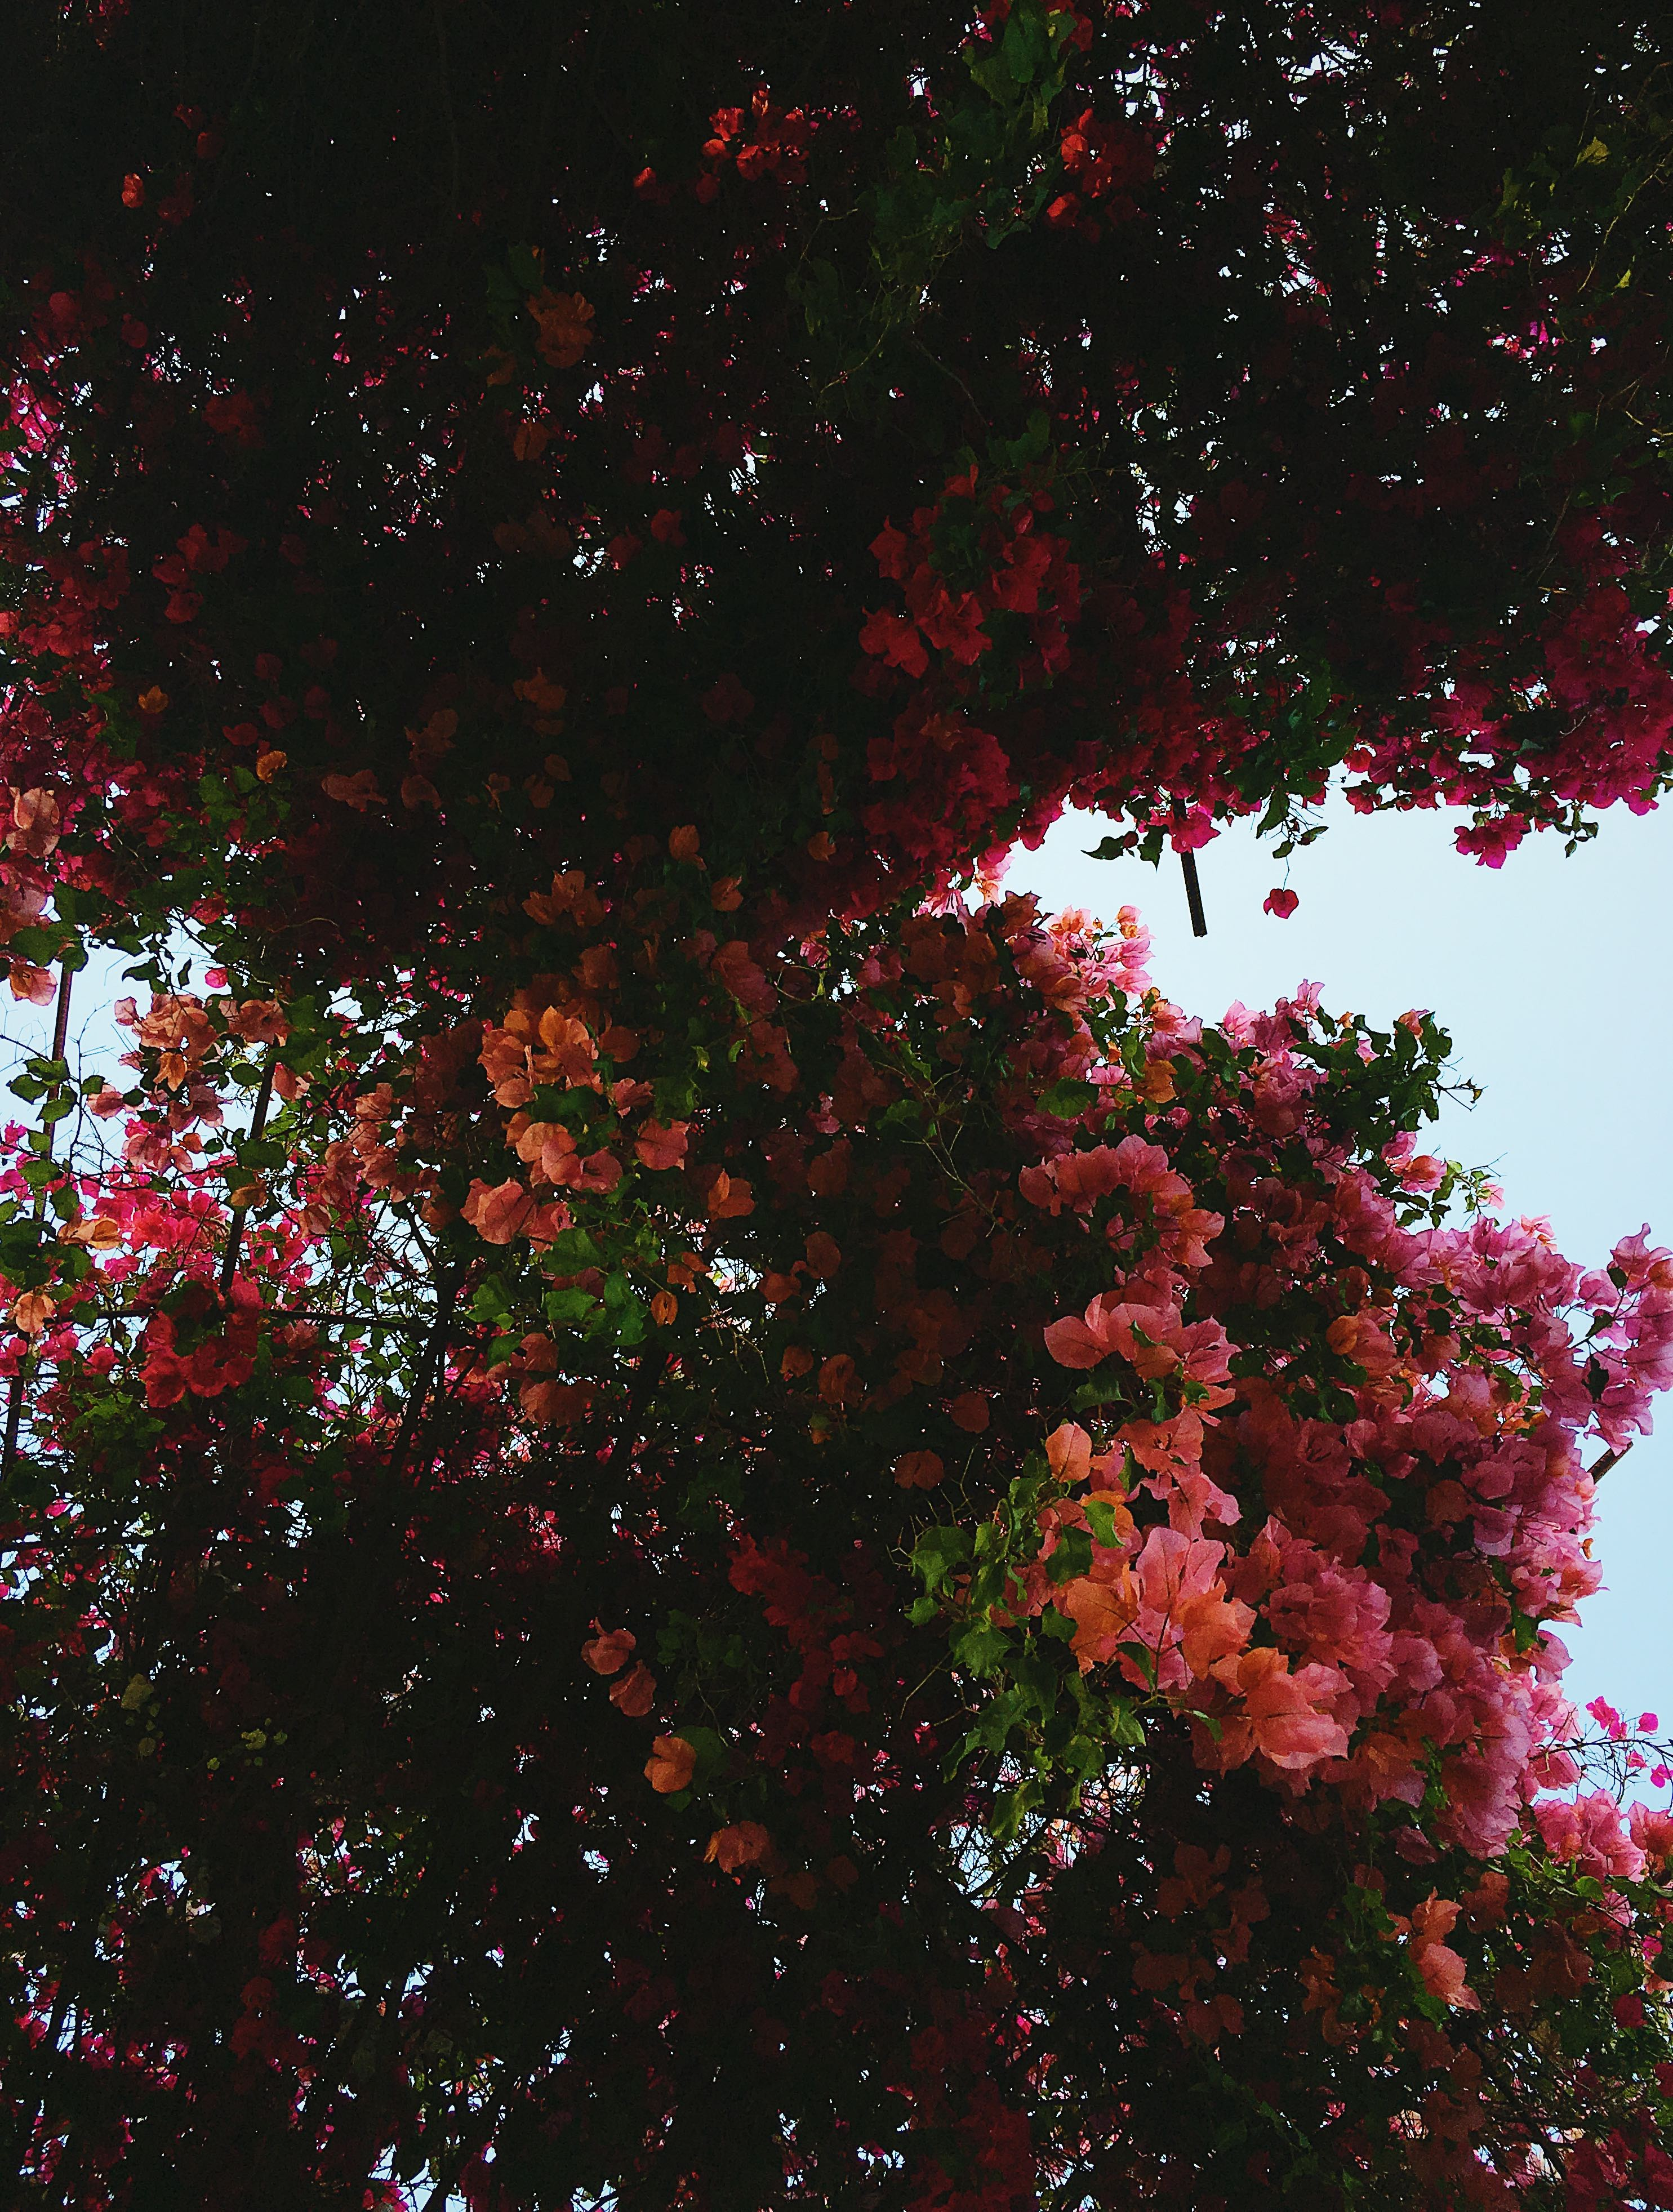 getty museum-flowertree-LCM-LiveClothesMinded